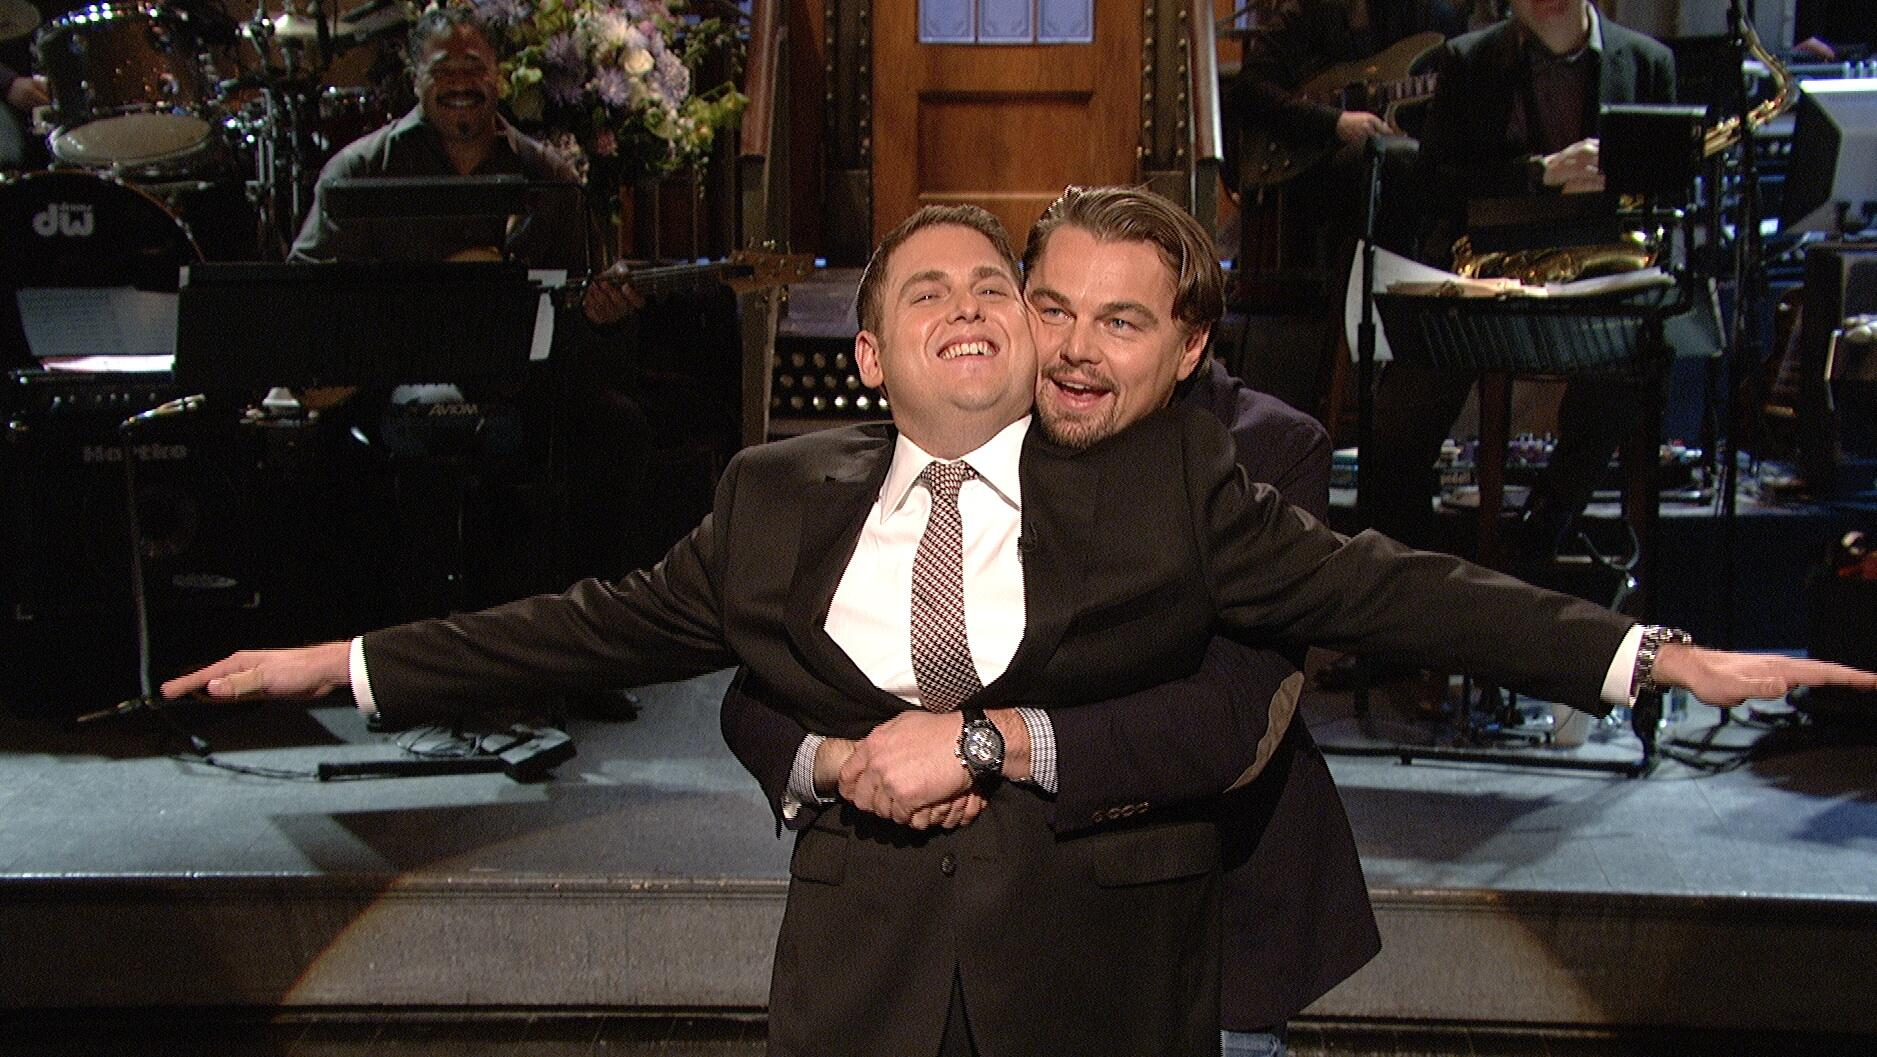 RT @nbcsnl: 'You're flying!' - @LeoDiCaprio. @JonahHill monologue. #SNL http://t.co/waZ1hX2pk9